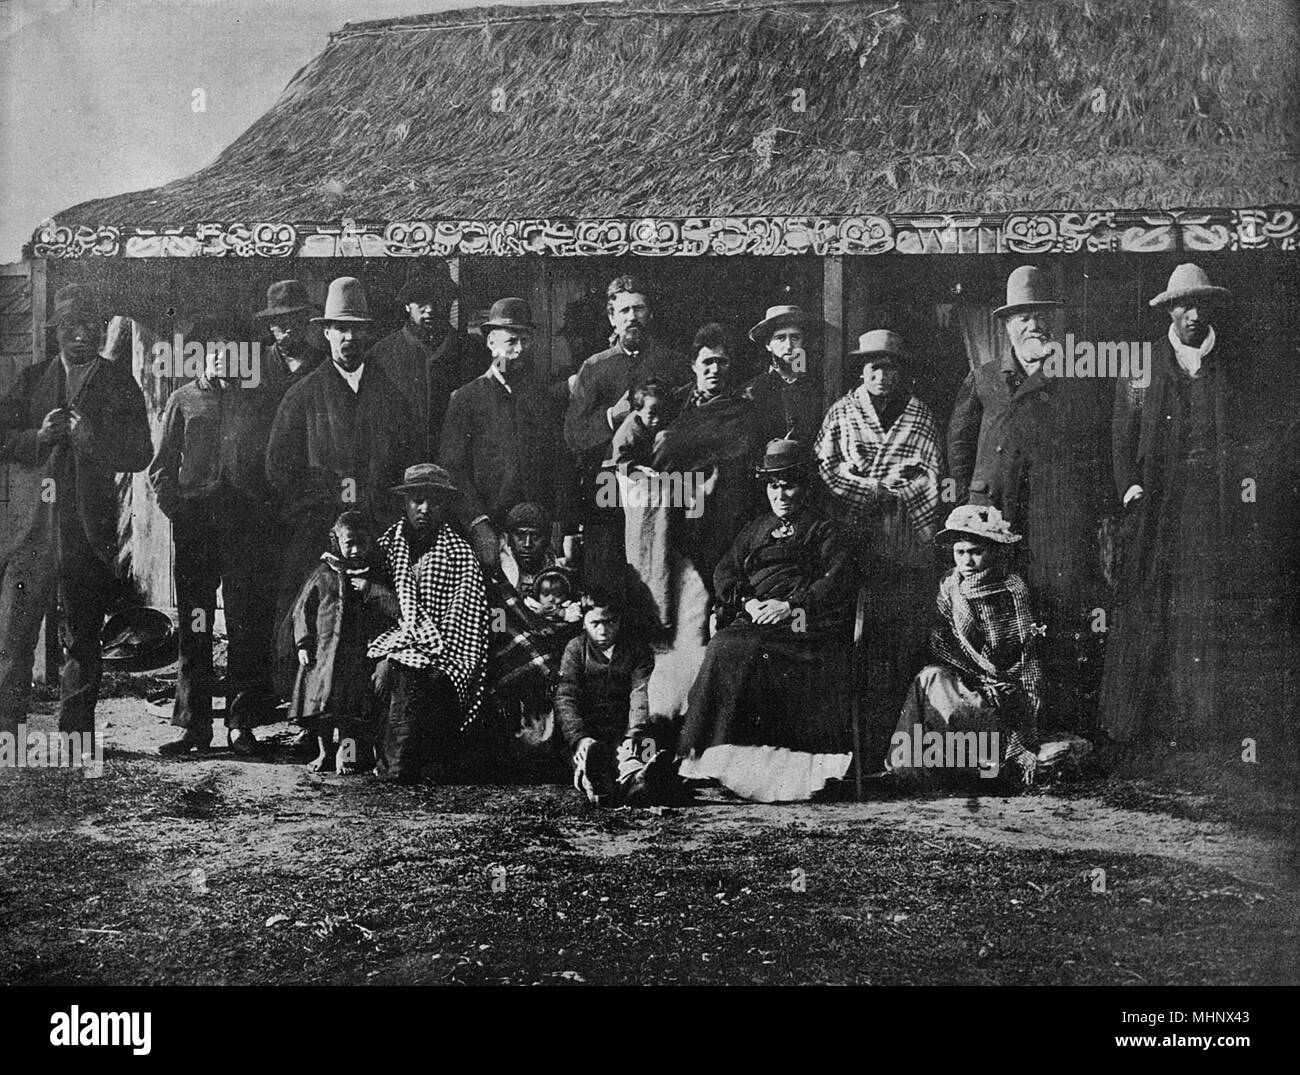 Refugees from the Maori village of Wairoa, North Island, New Zealand, following the eruption of Mount Tarawera in 1886, when their village was buried in mud and lava. Seen here in a group photo in Ohinemutu, outside a whare (hut).      Date: circa late 1880s - Stock Image